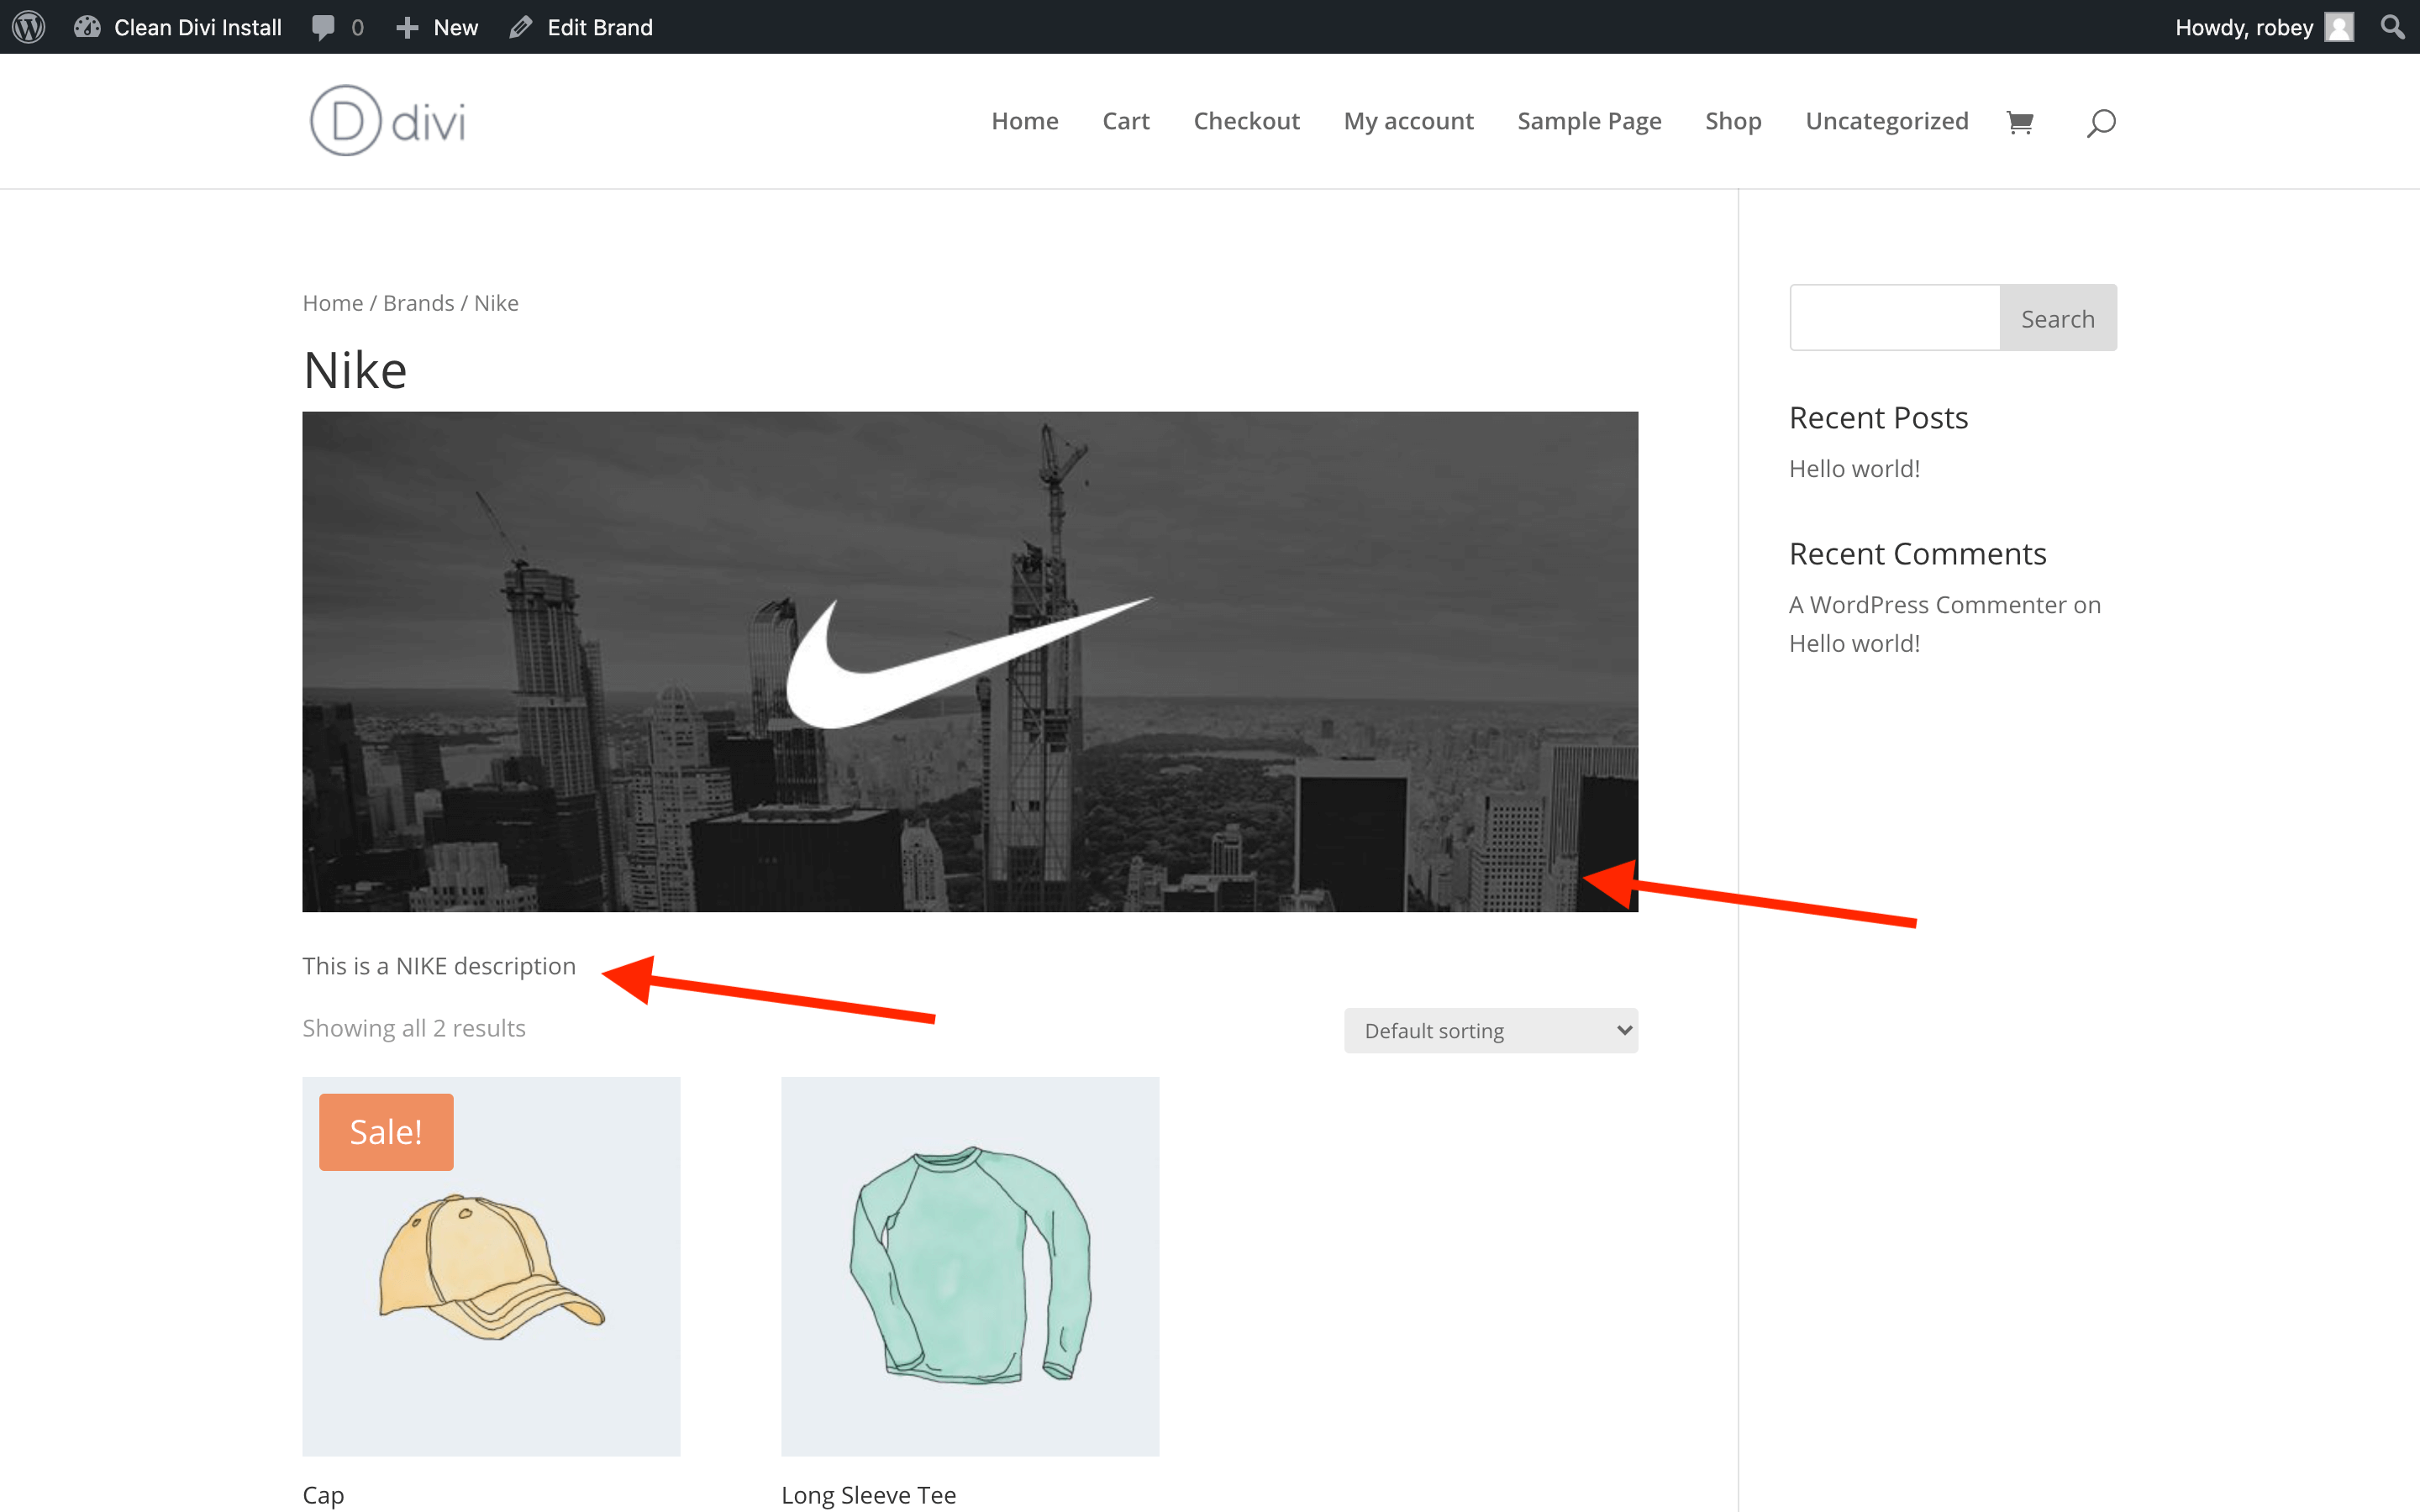 Brand Page in Divi WooCommerce